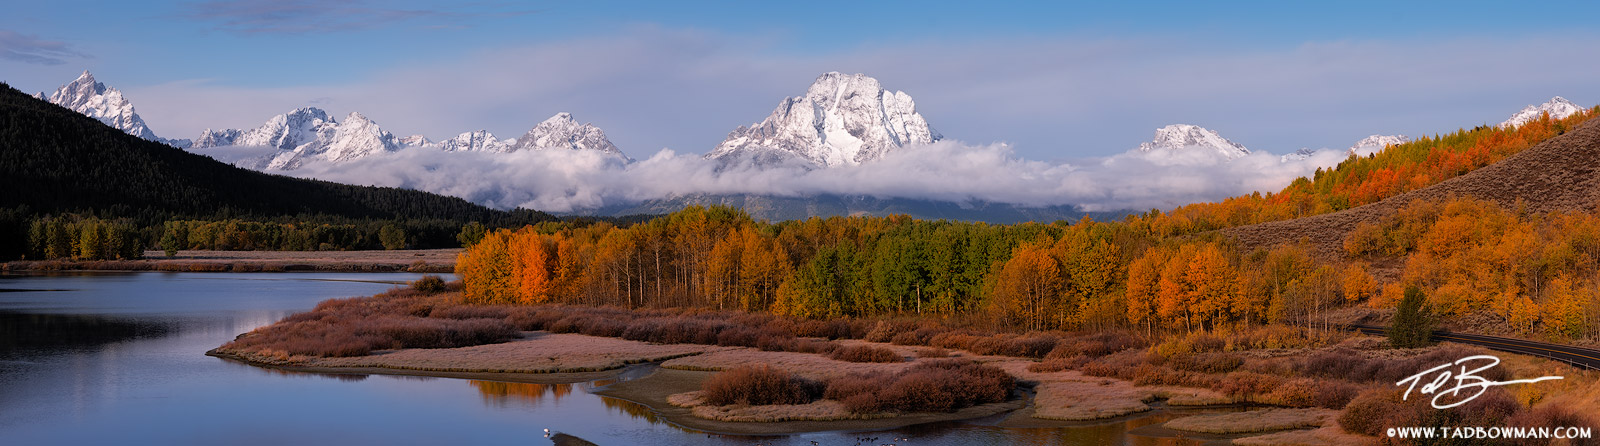 This Wyoming fall photo depicts a snowy Grand Teton morning with colorful fall foliage situated at Oxbow Bend